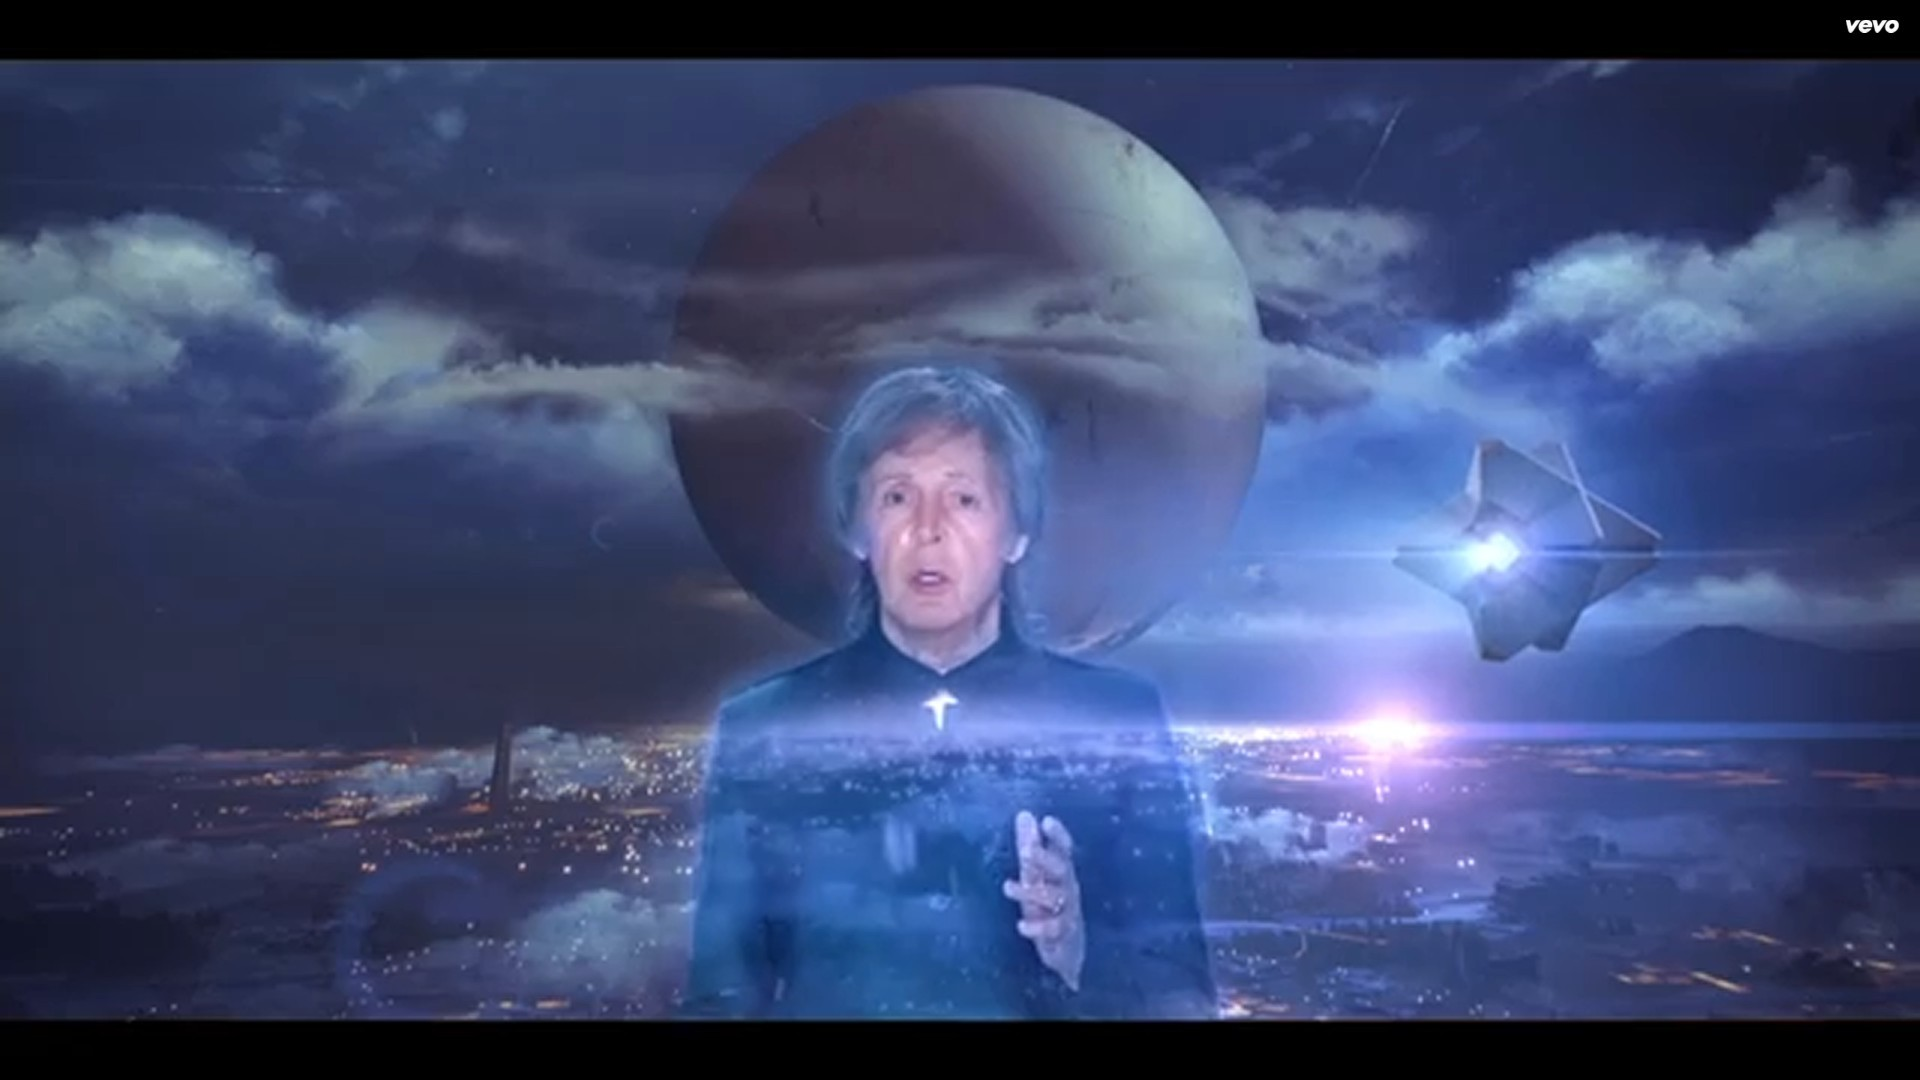 Paul-McCartney-Is-a-Hologram-in-Hope-for-the-Future-Song-for-Destiny-Game